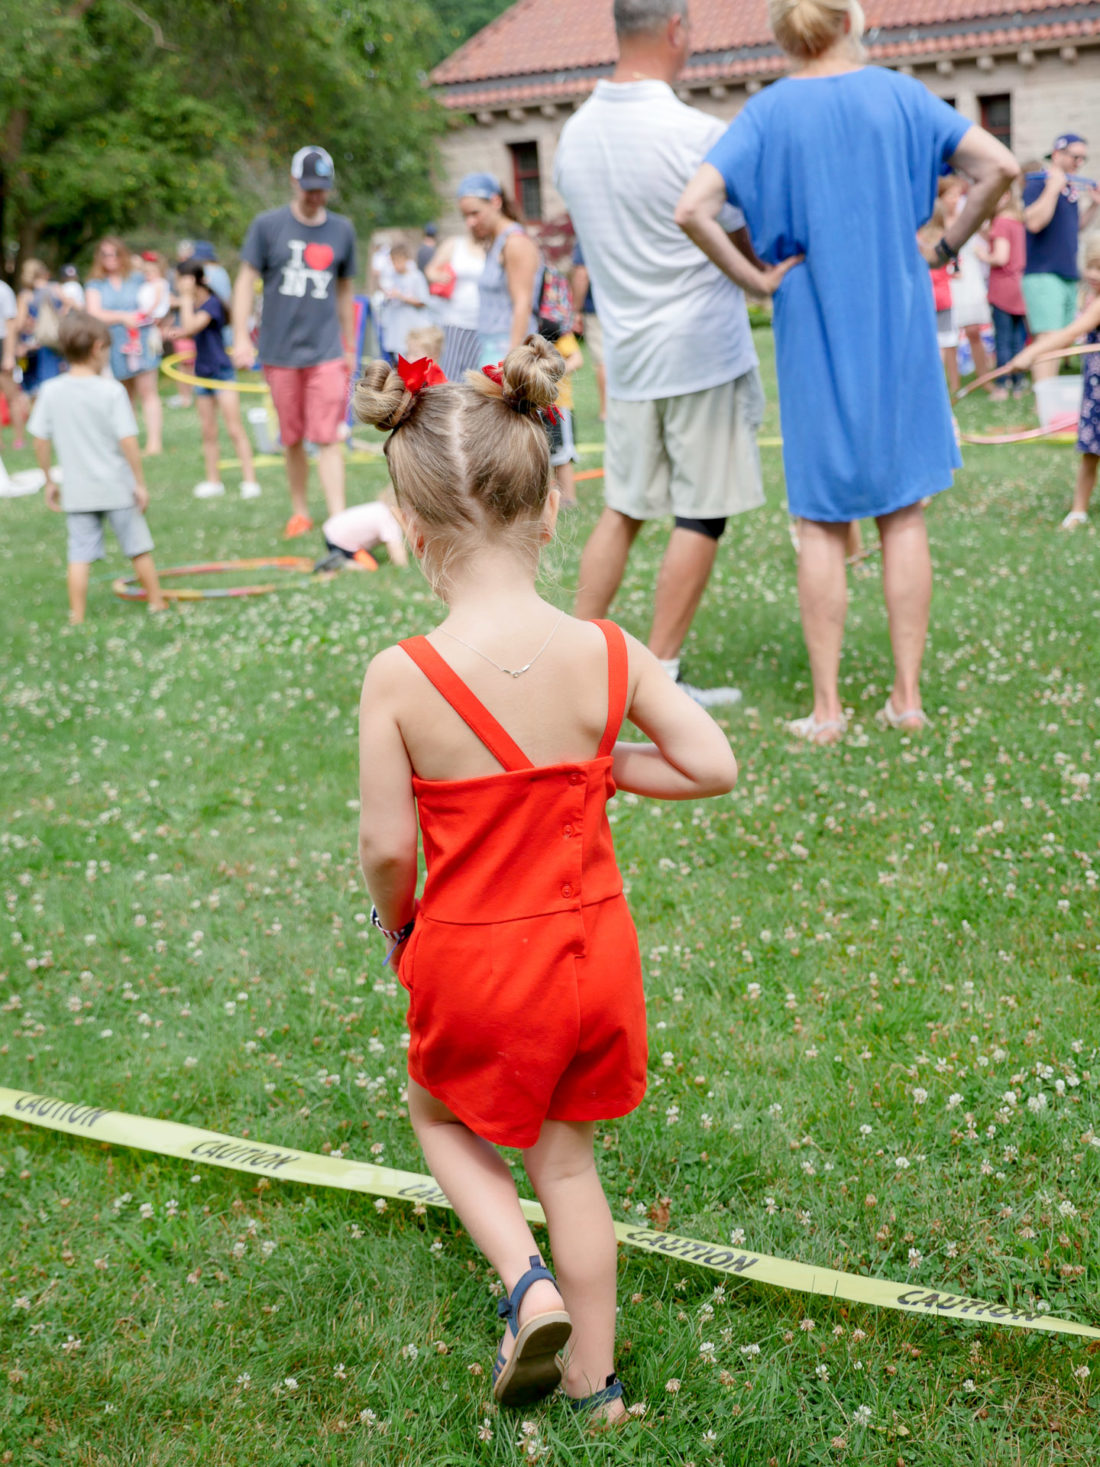 Marlowe Martino wears a red romper and explores a fourth of july lawn party